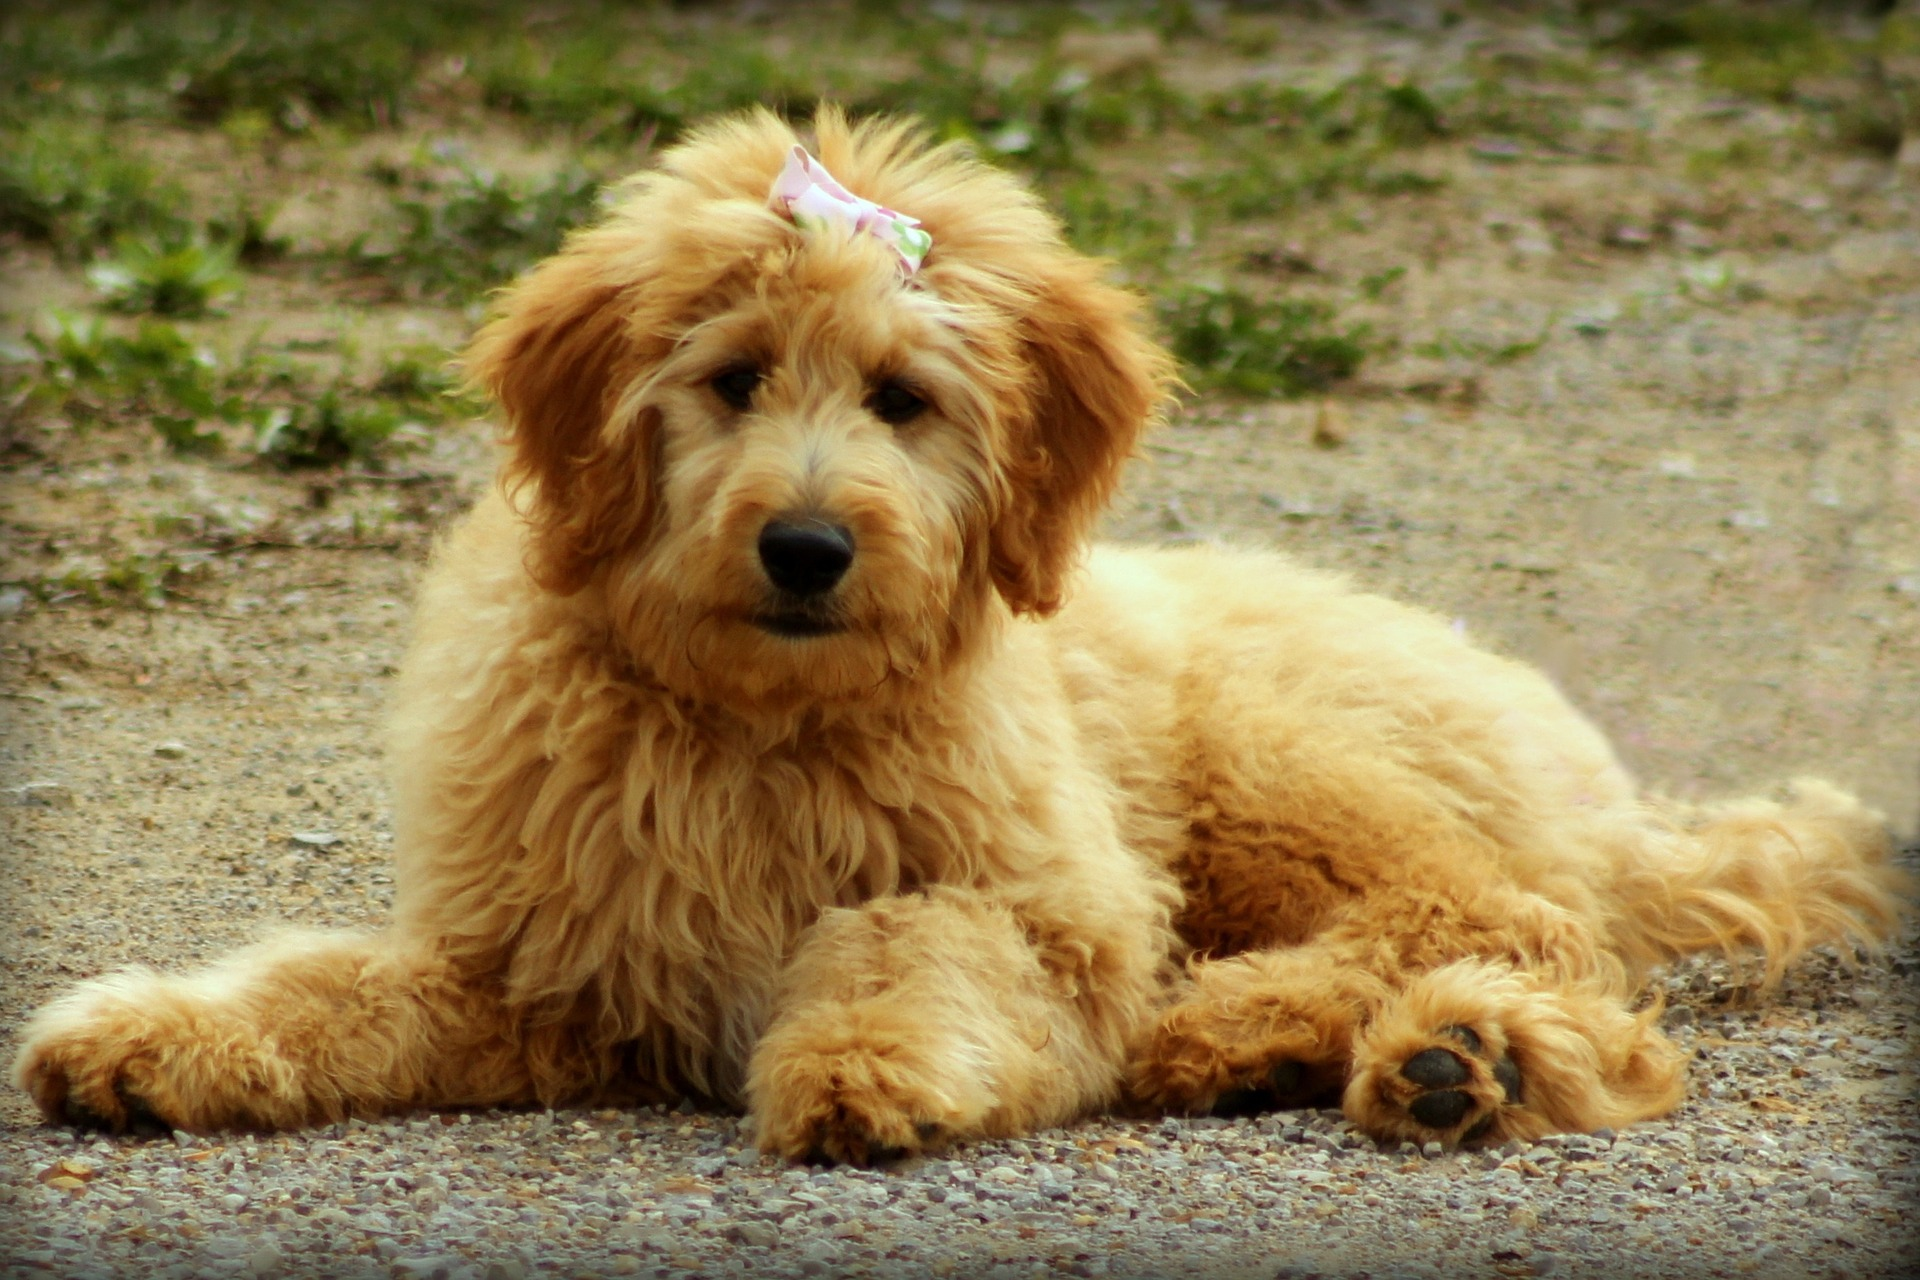 What Is The Best Dog Food for a Goldendoodle? | Goldendoodle Adult Dog | Dogfood.guru